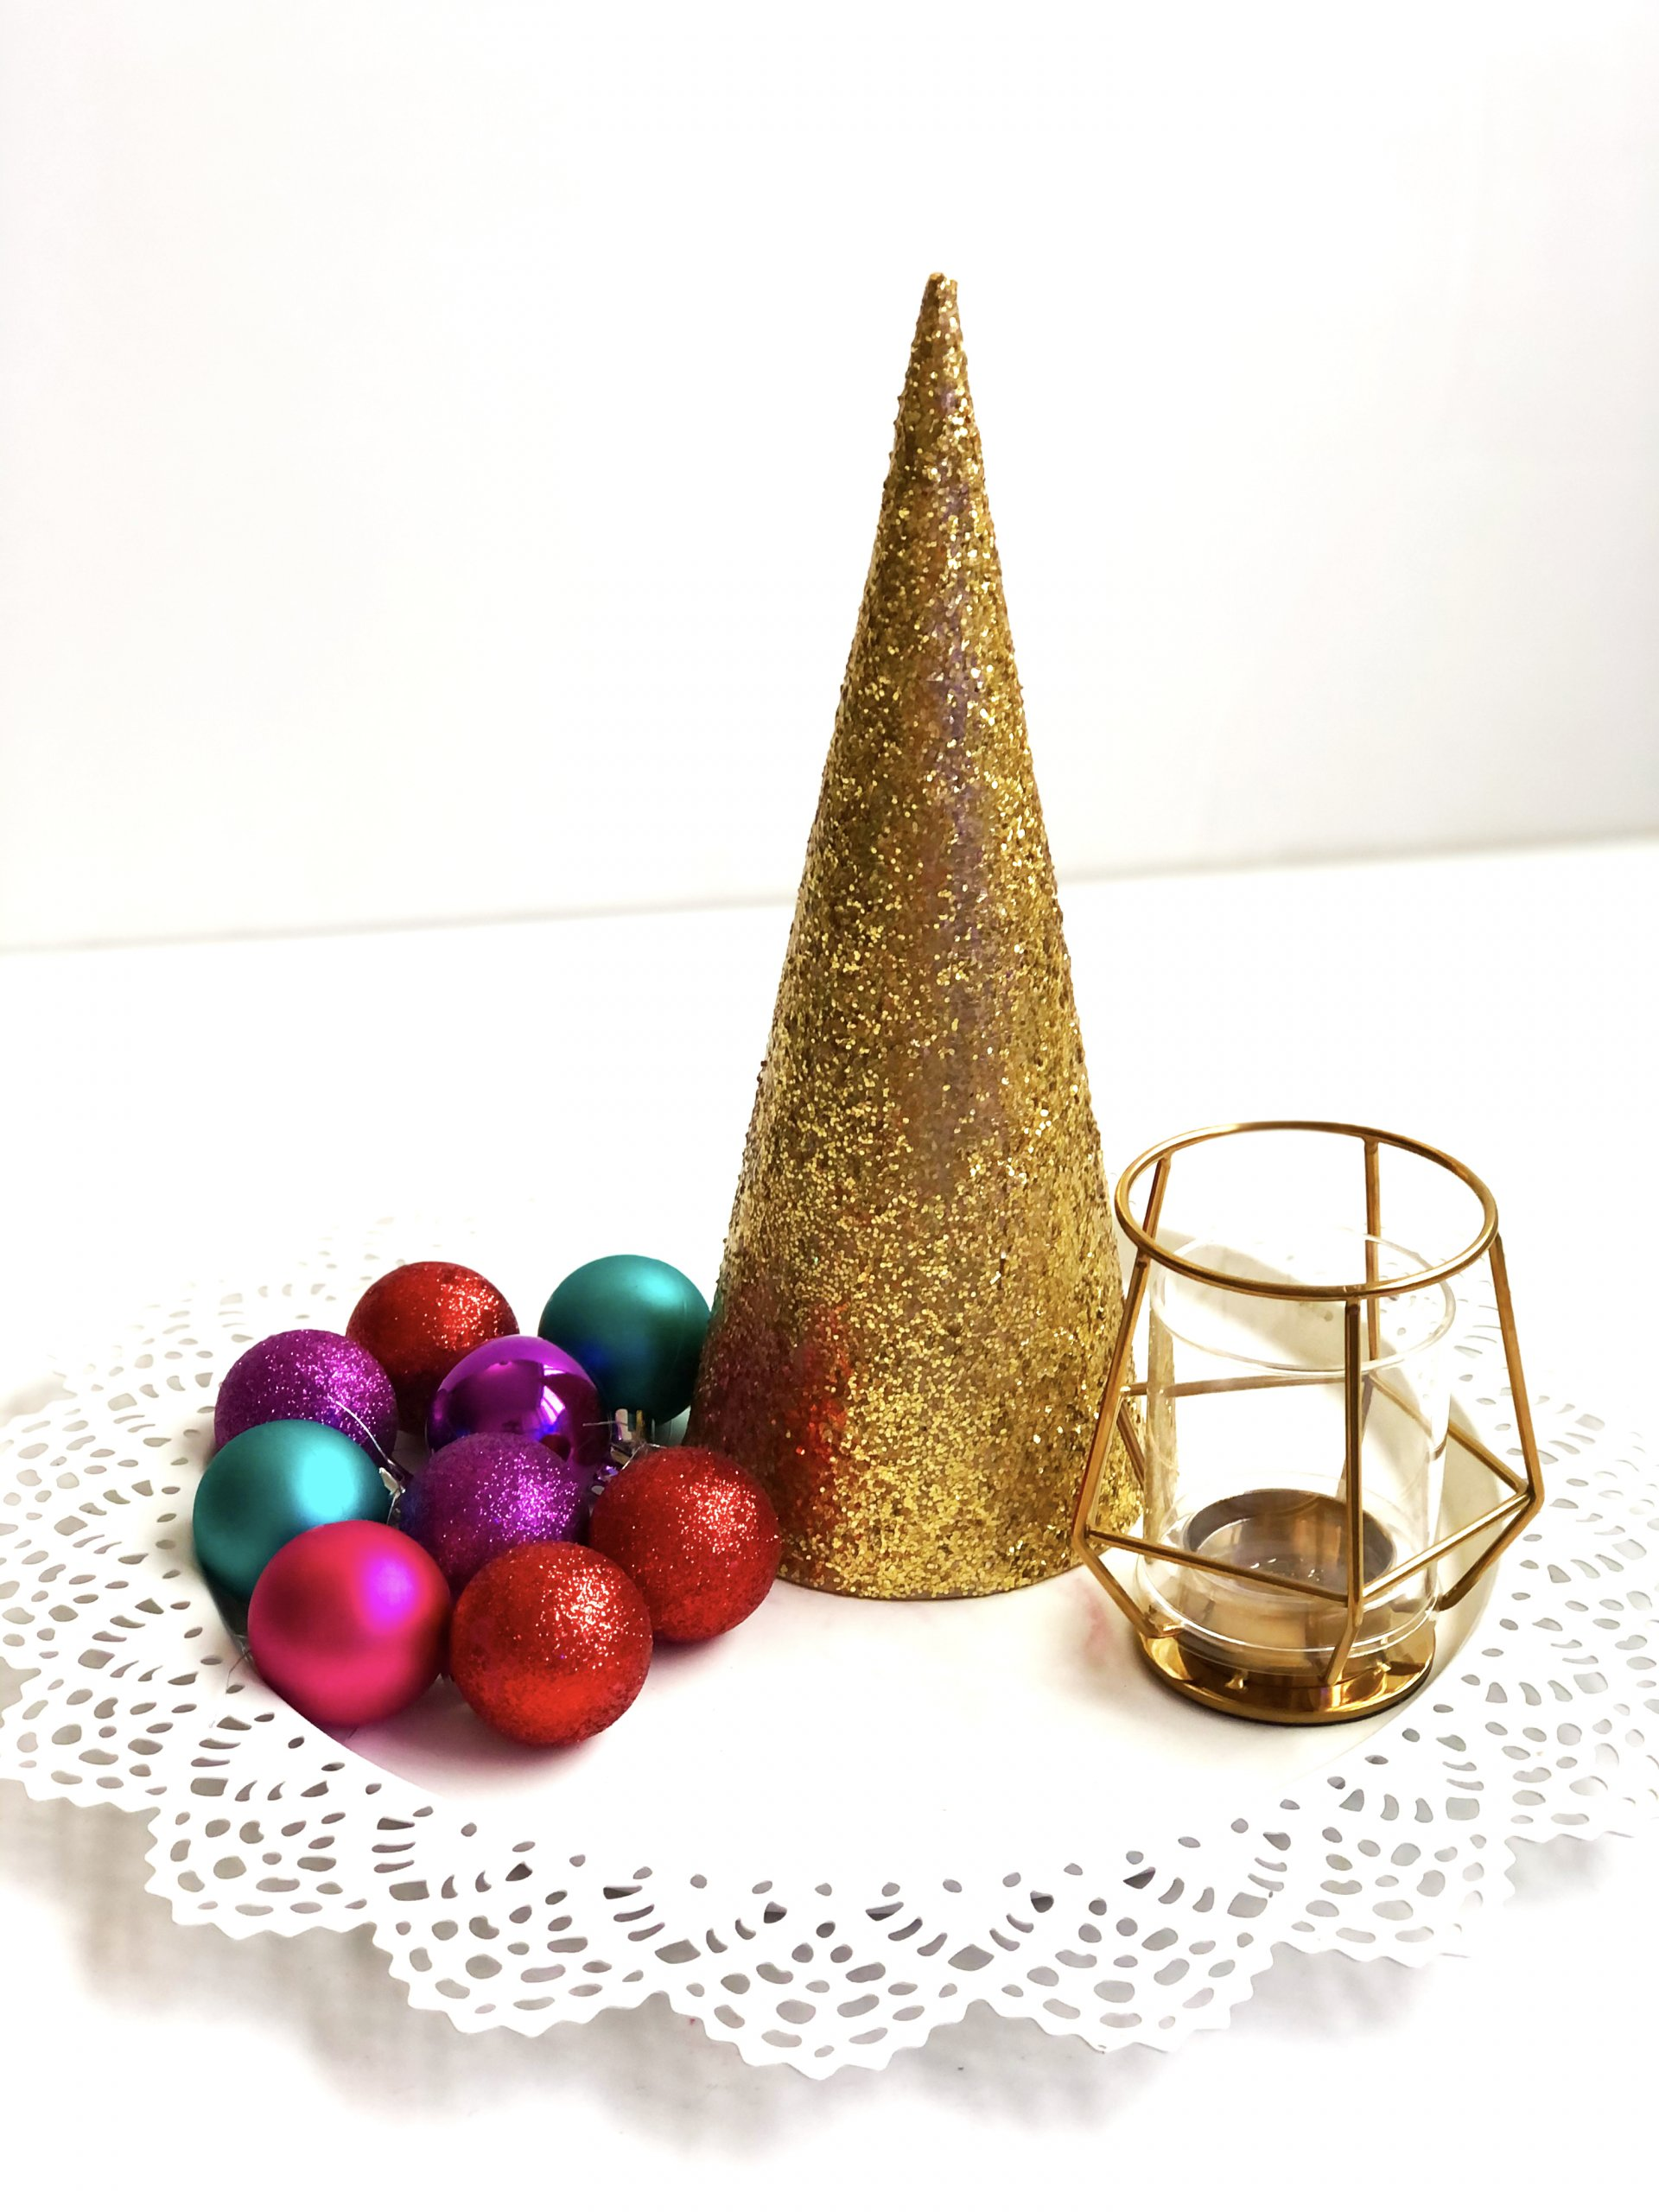 DIY Glitter Cone Christmas Trees in a tray